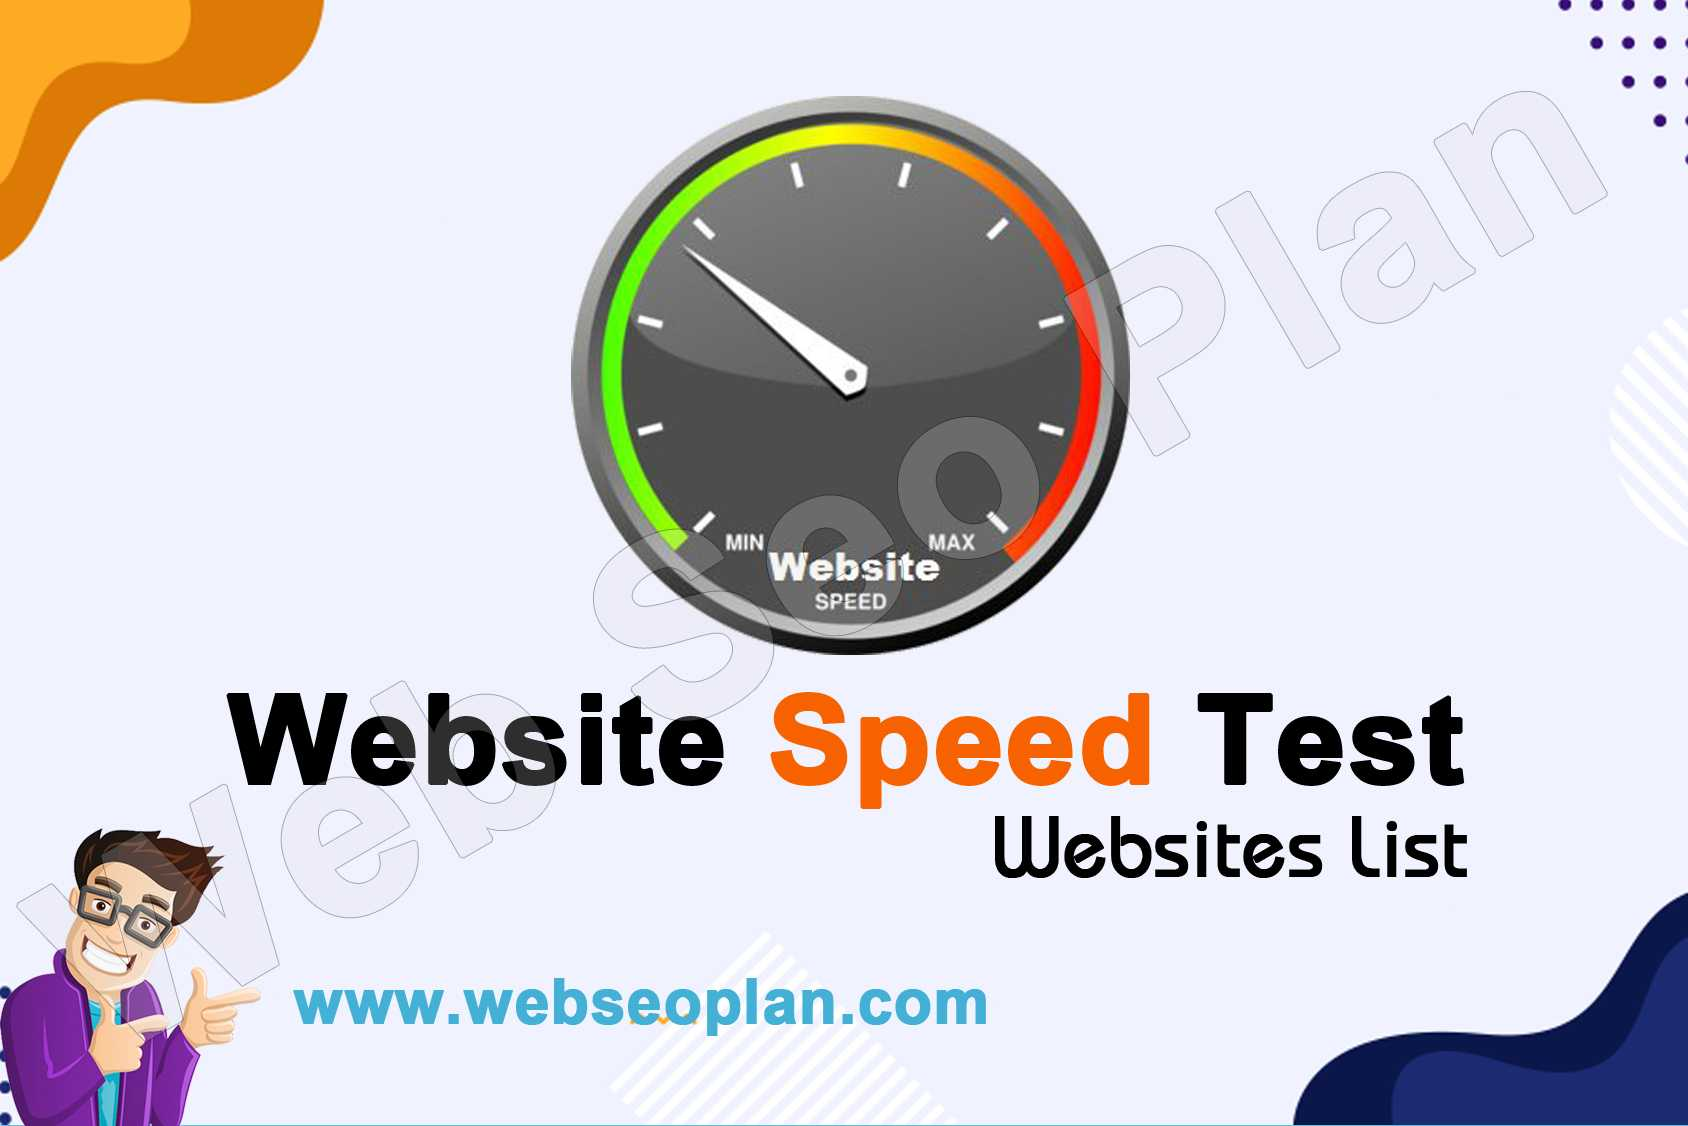 Website Speed Test Website List